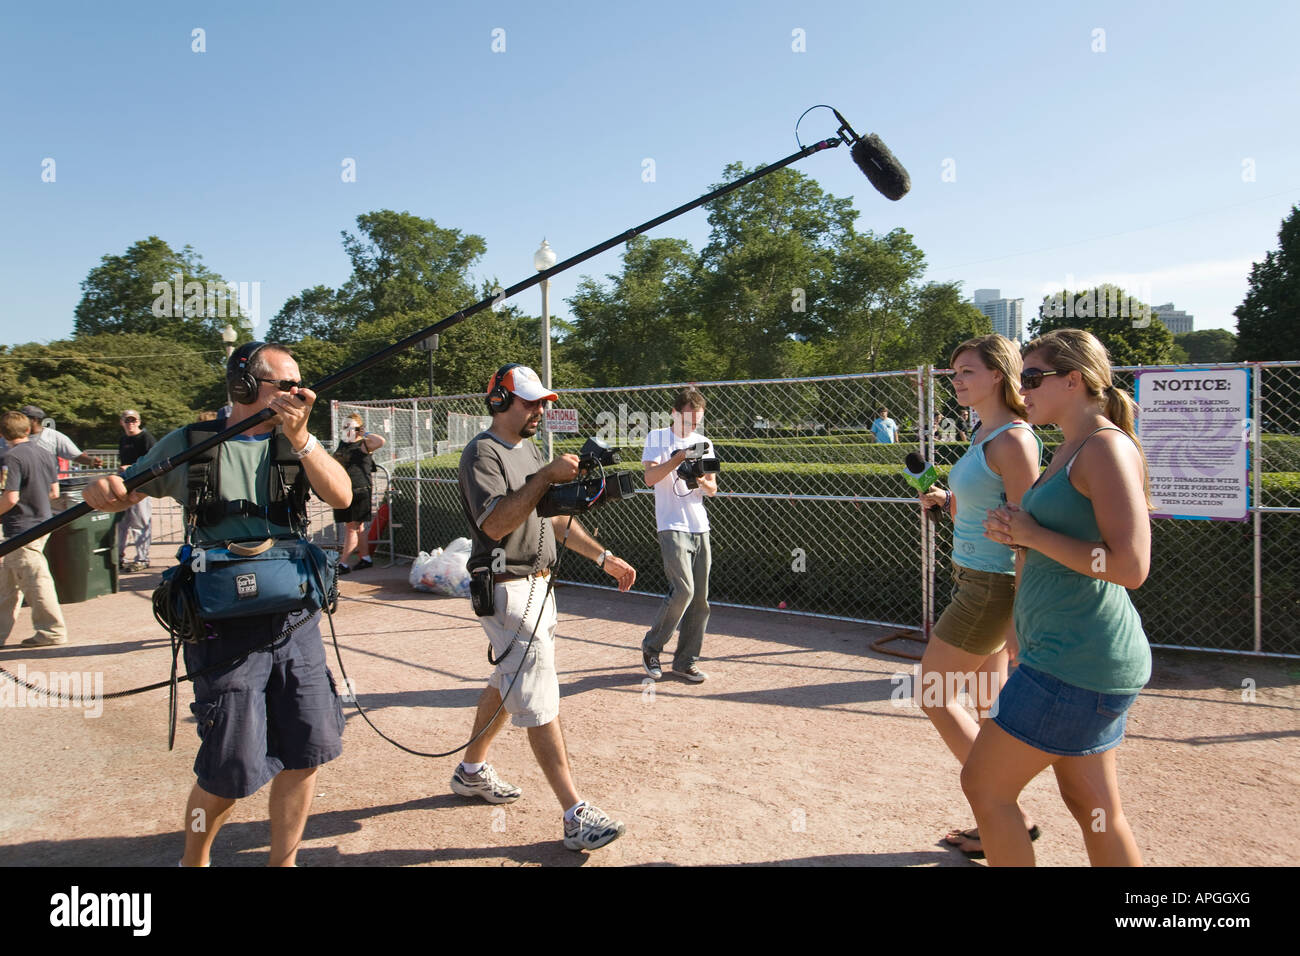 ILLINOIS Chicago Female young adult interviewed and filmed before entering Lollapalooza musical concert venue in - Stock Image